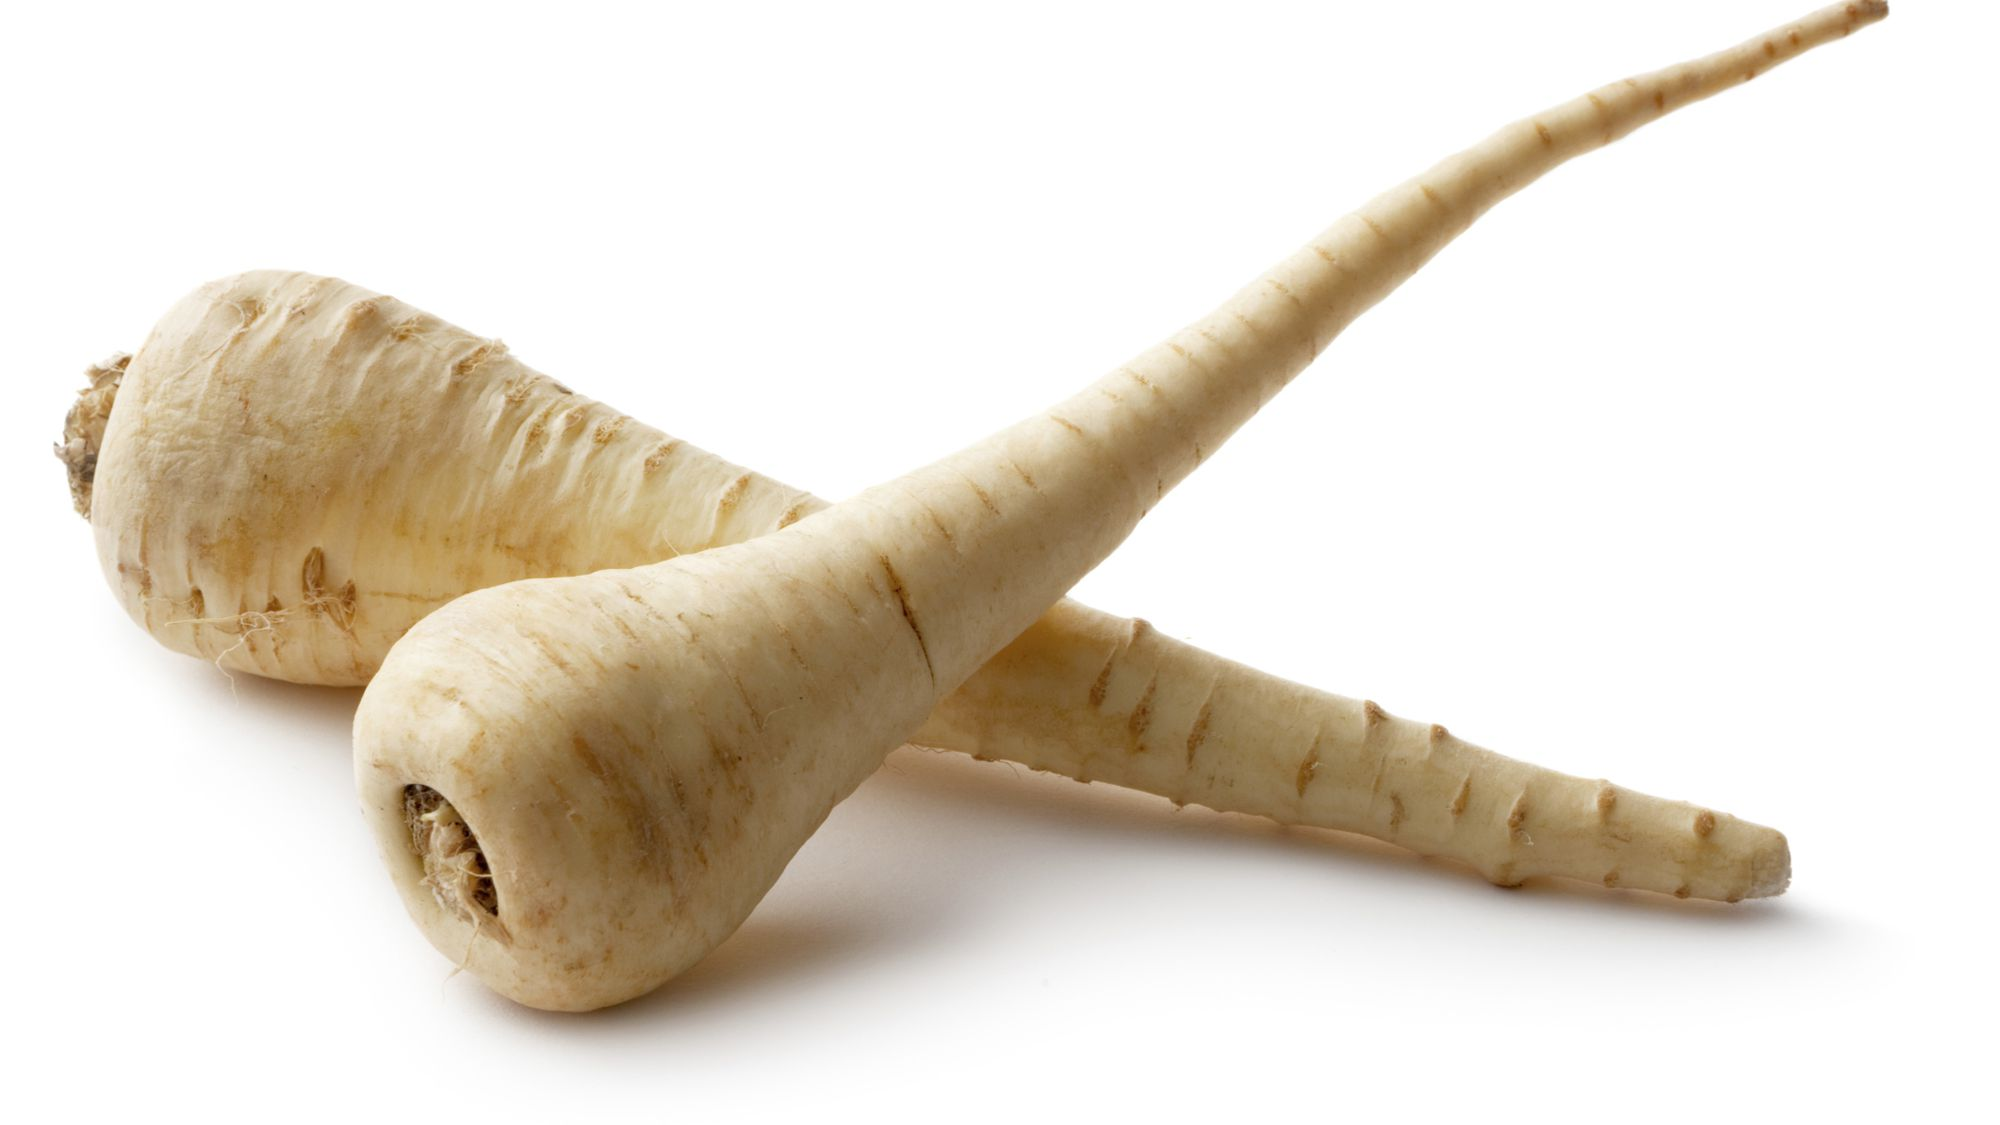 Parsnip picture